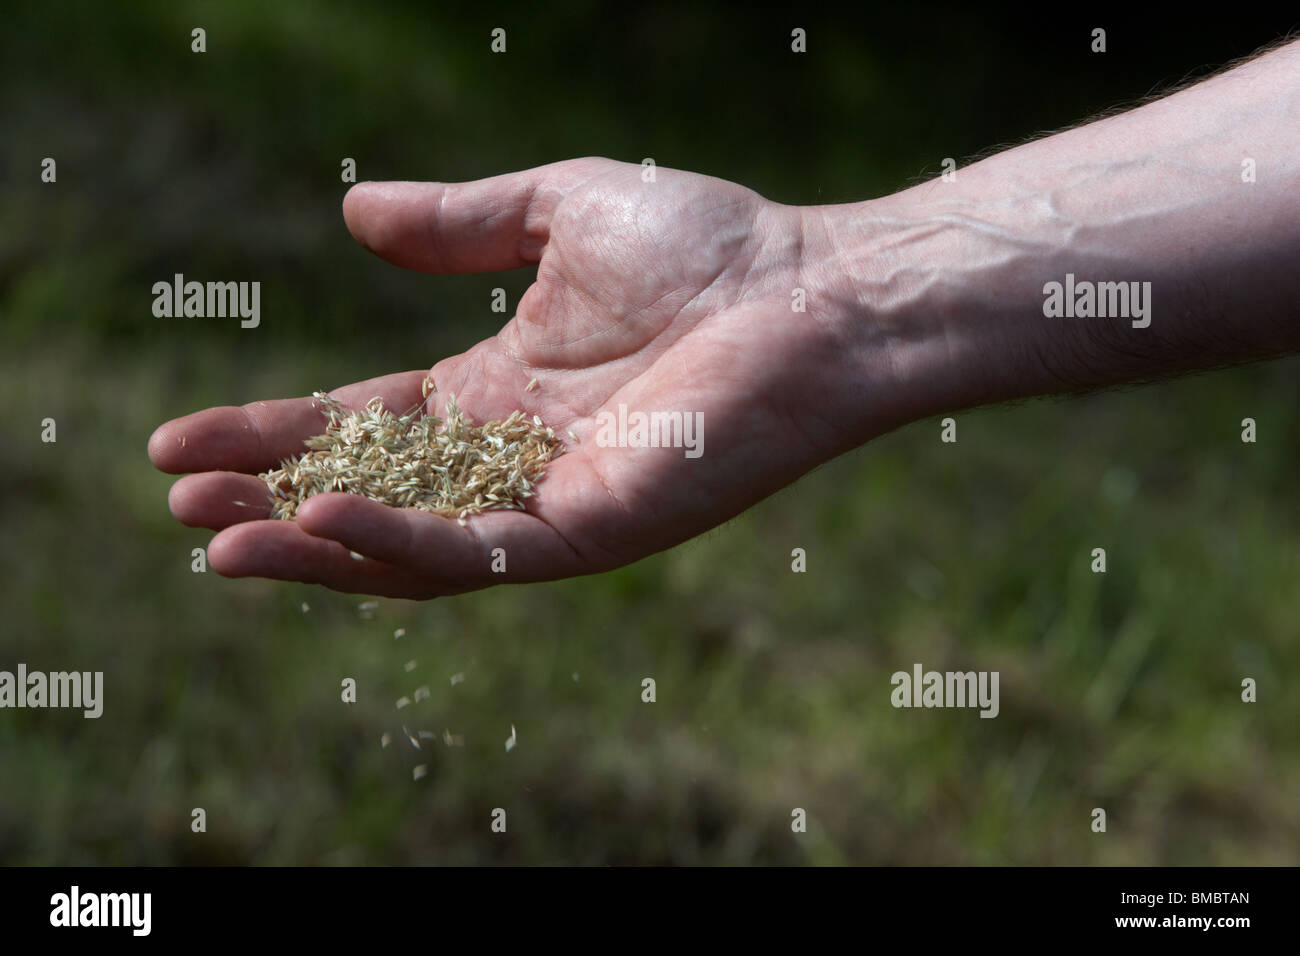 mans hand scattering grass seeds in a garden over a lawn - Stock Image